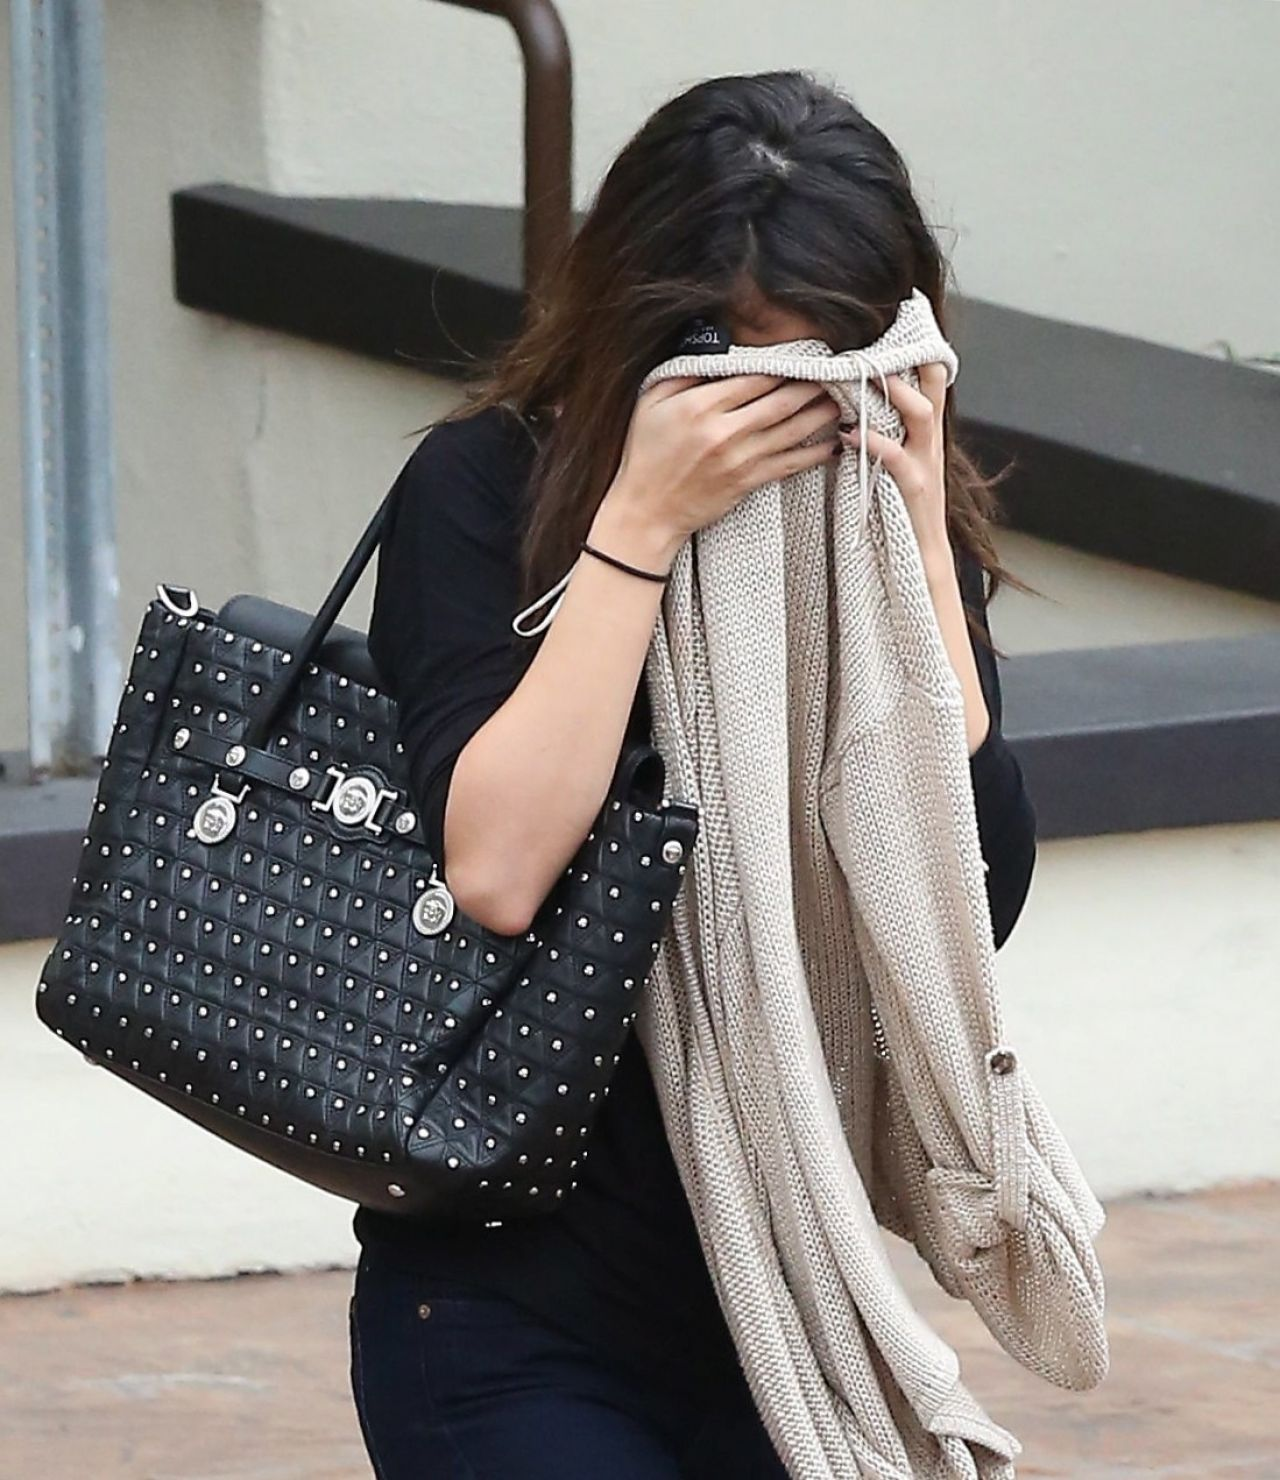 Selena Gomez - Leaving a Medical Building in Los Angeles - January 2014